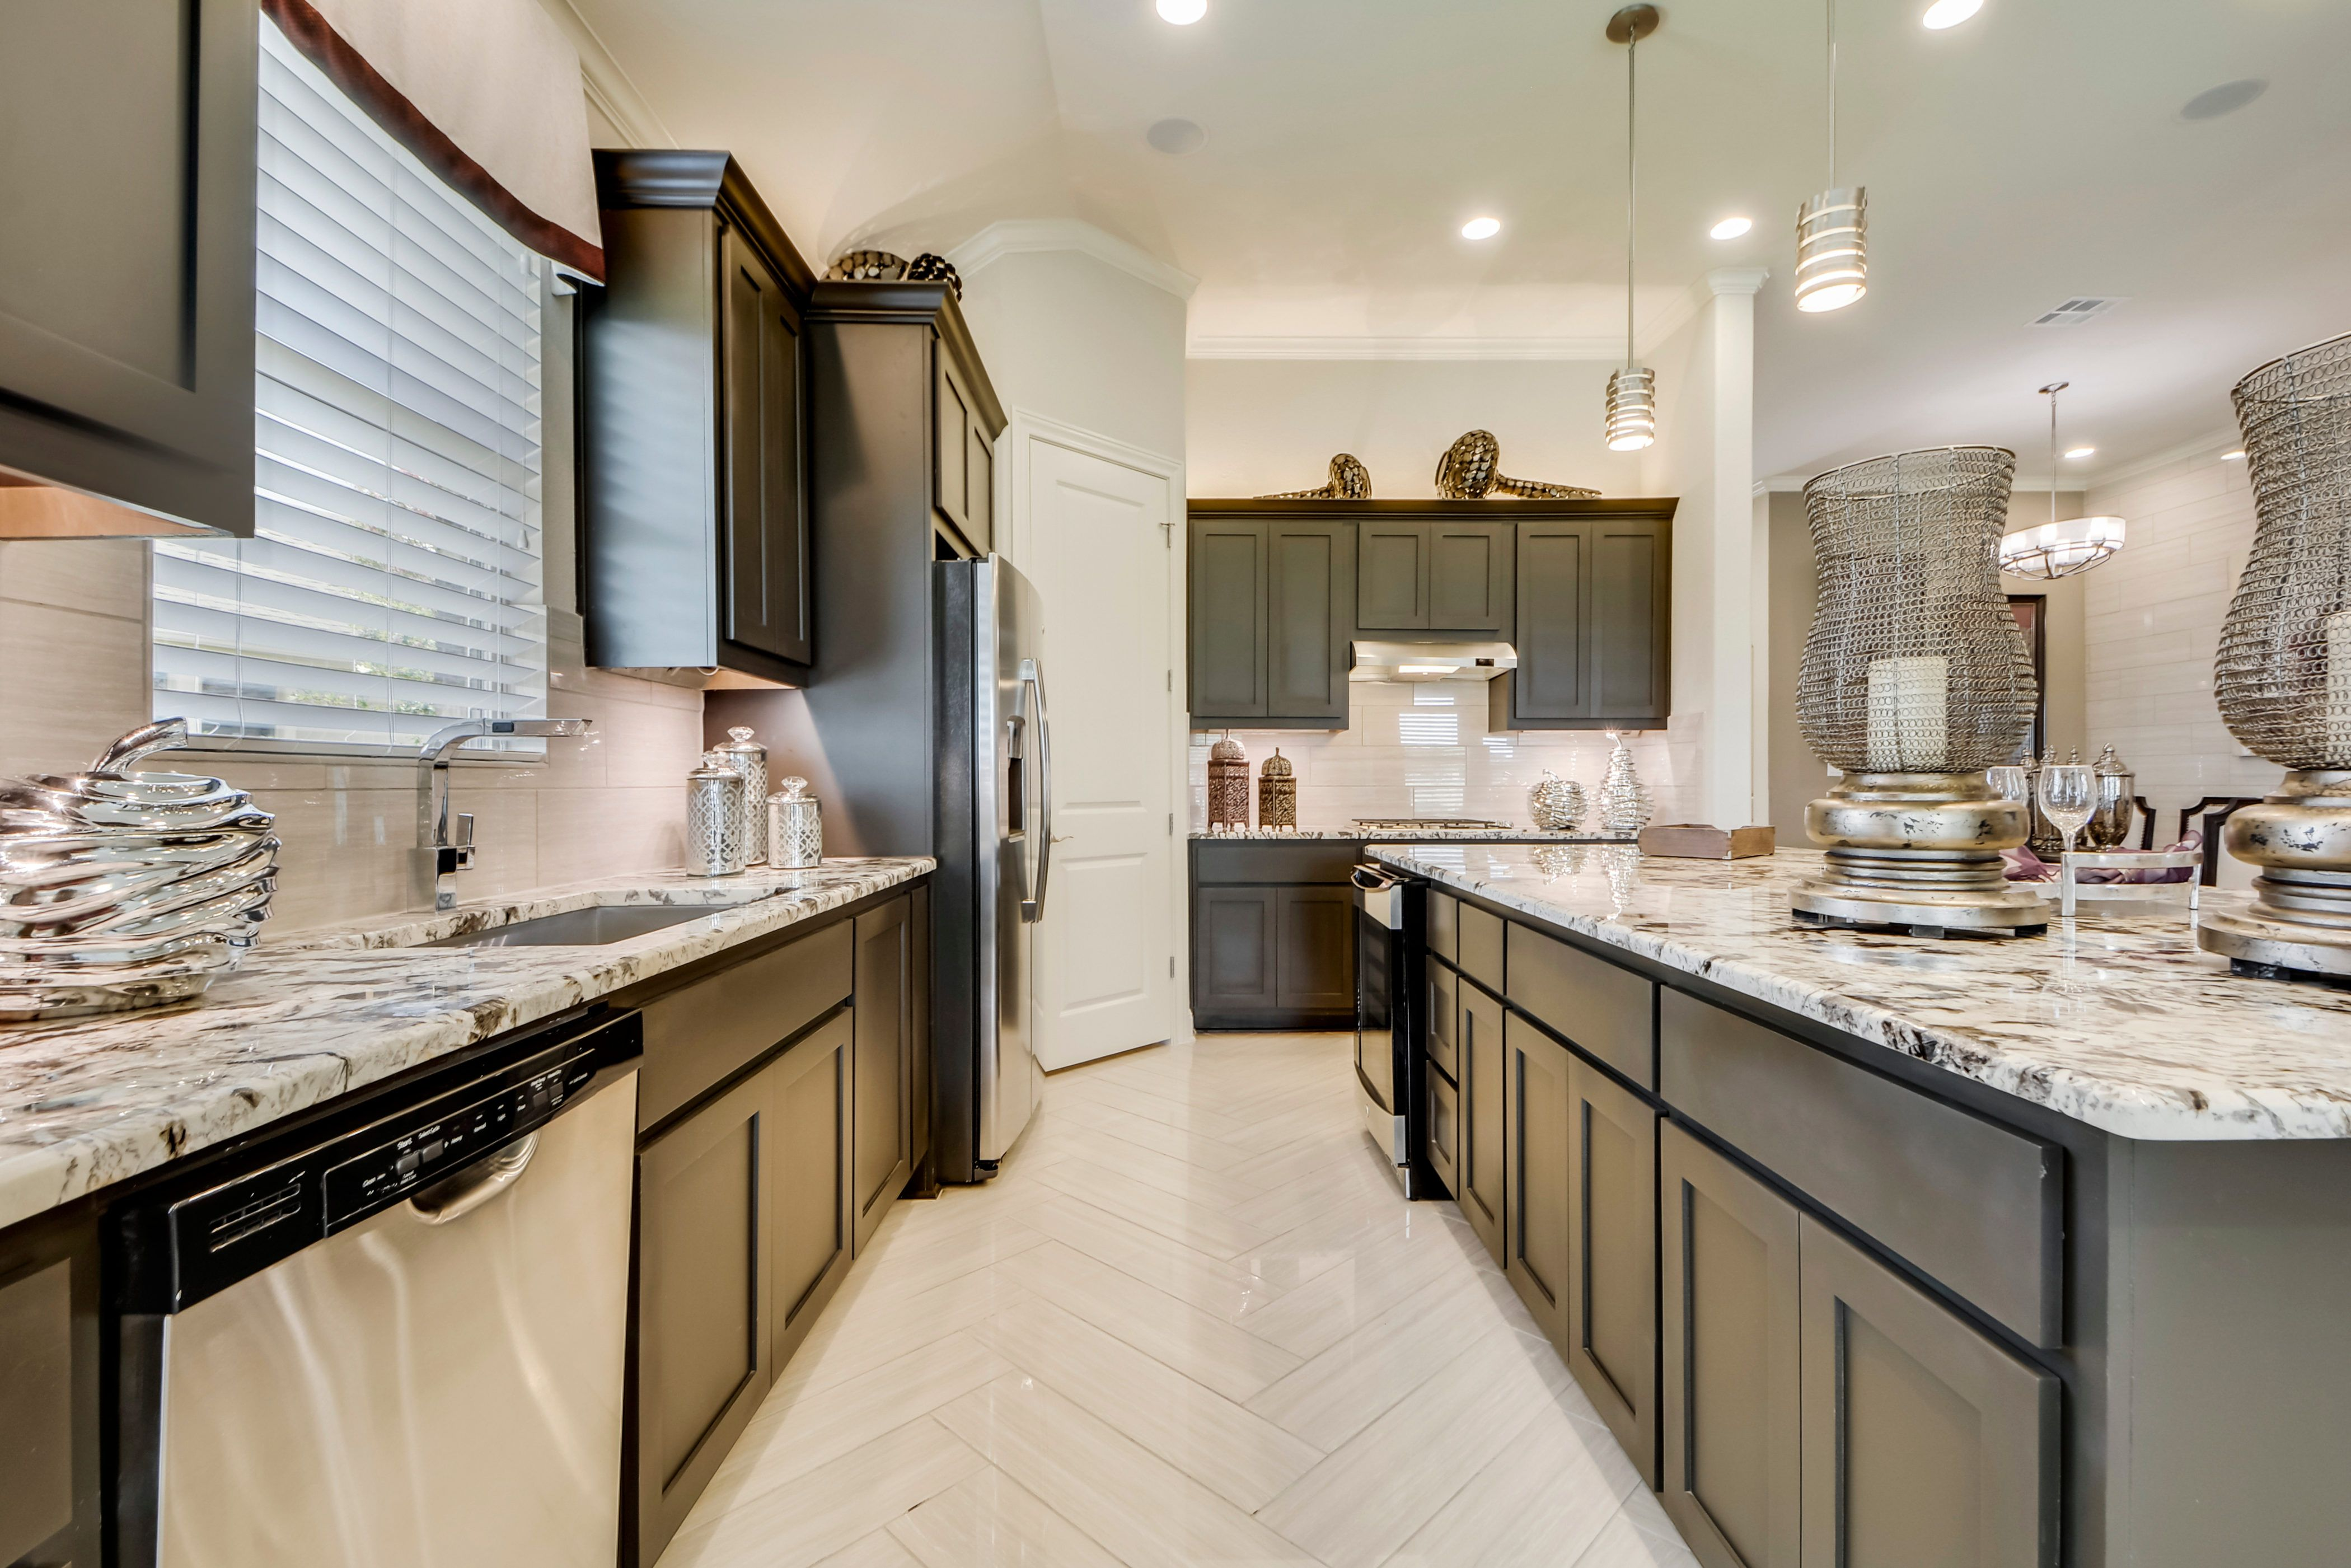 A Sleek Modern Kitchen With A Huge Center Island And Textured Granite Countertops Interiordesign Dreamhome Bellvue New Homes Family Room